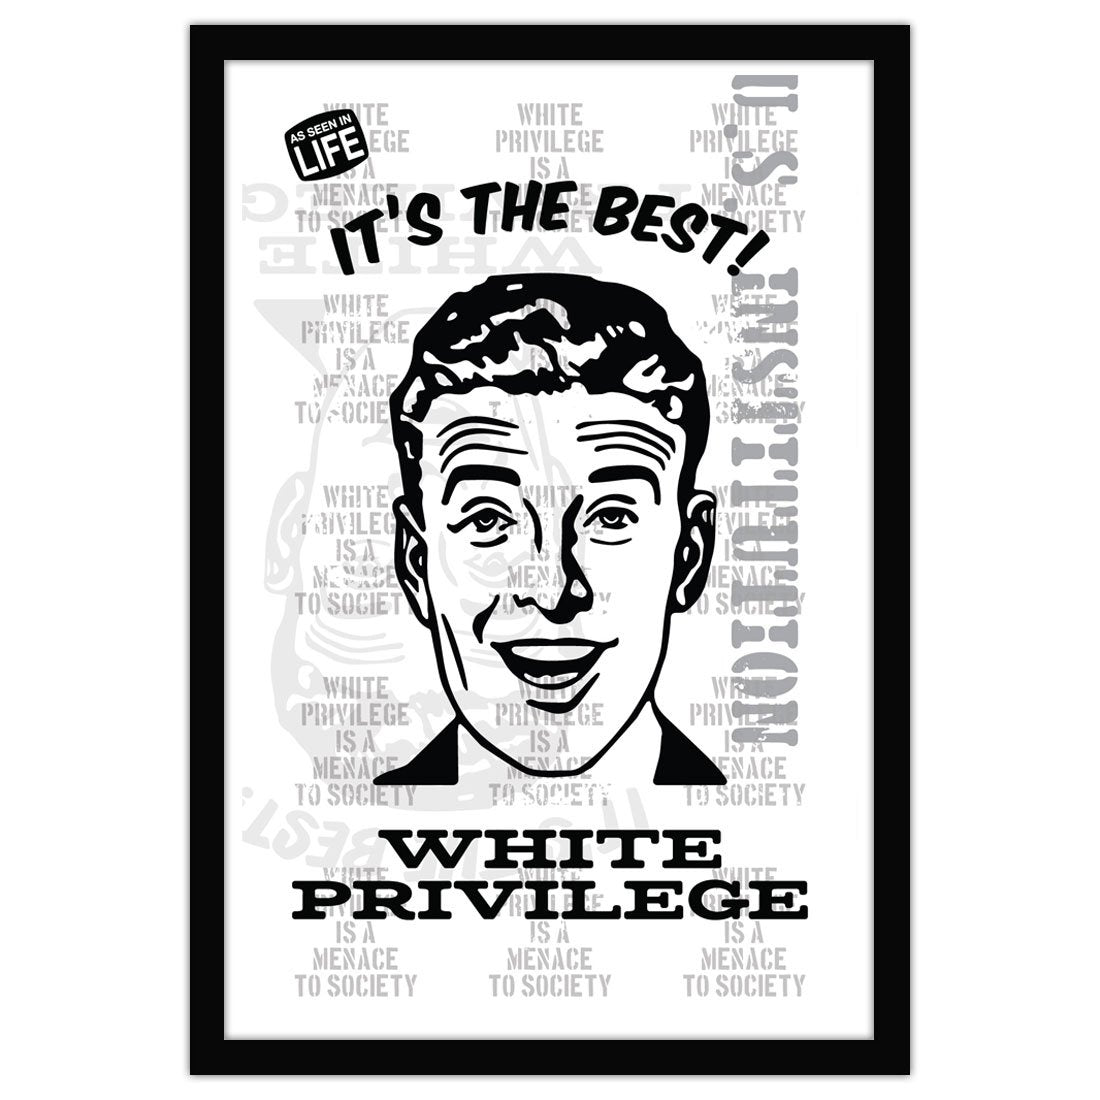 David Bernie Shop Fine Art Print Poster 11x17 18x24 36x48 White Privilege It's The Best